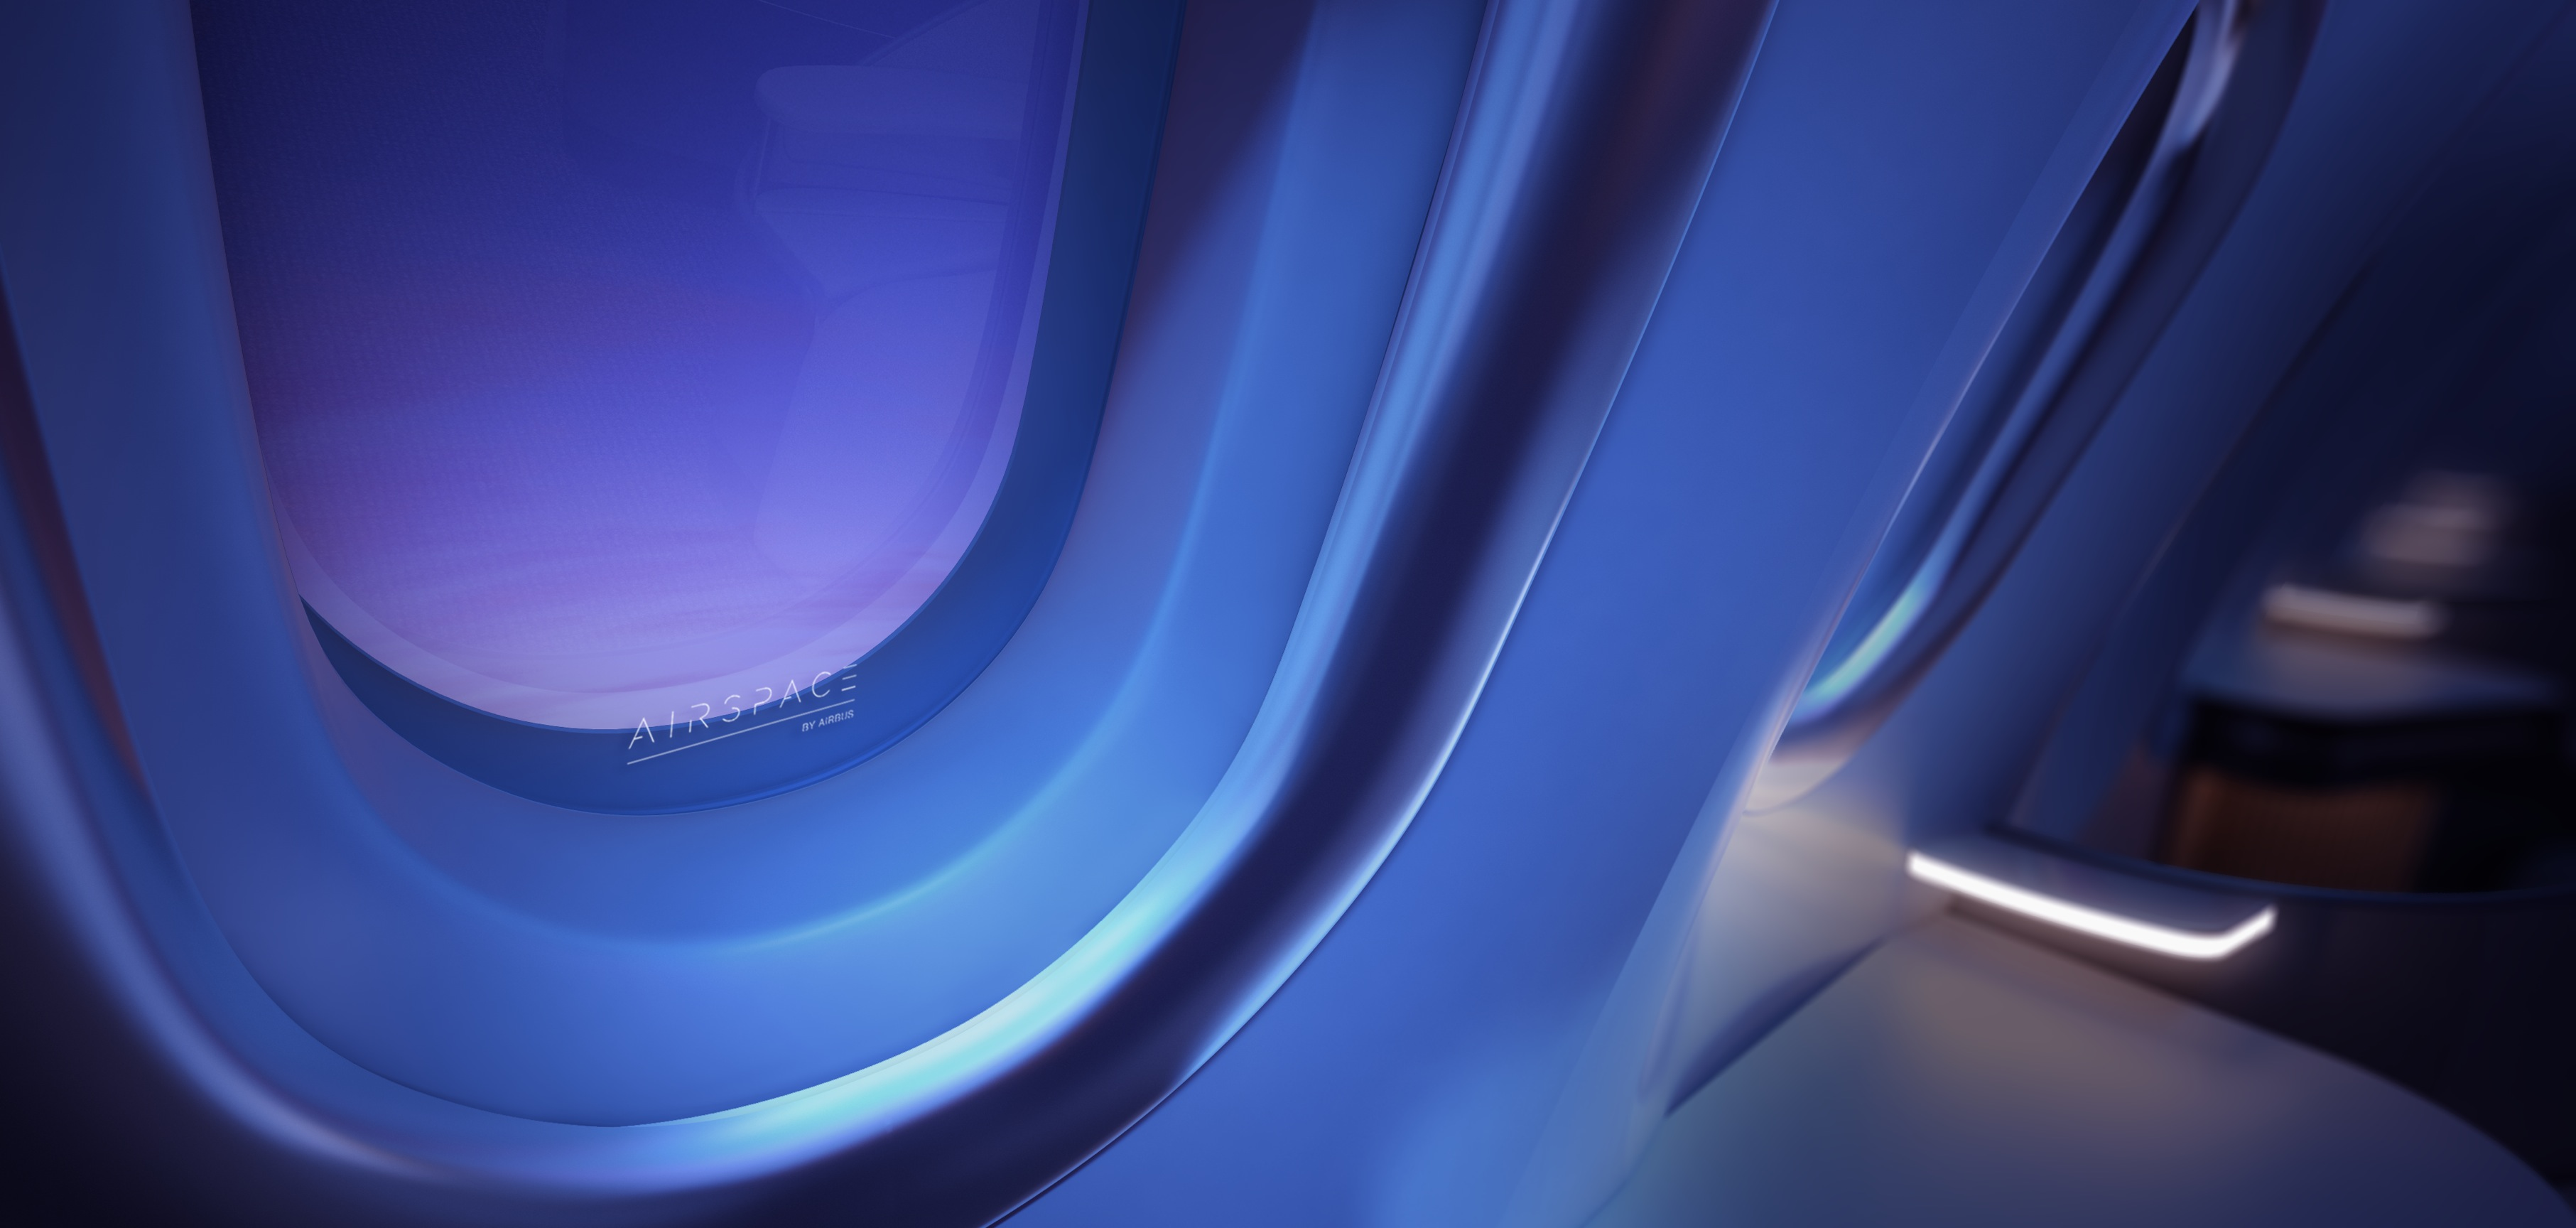 A330neo_Airspace_by_Airbus_Design